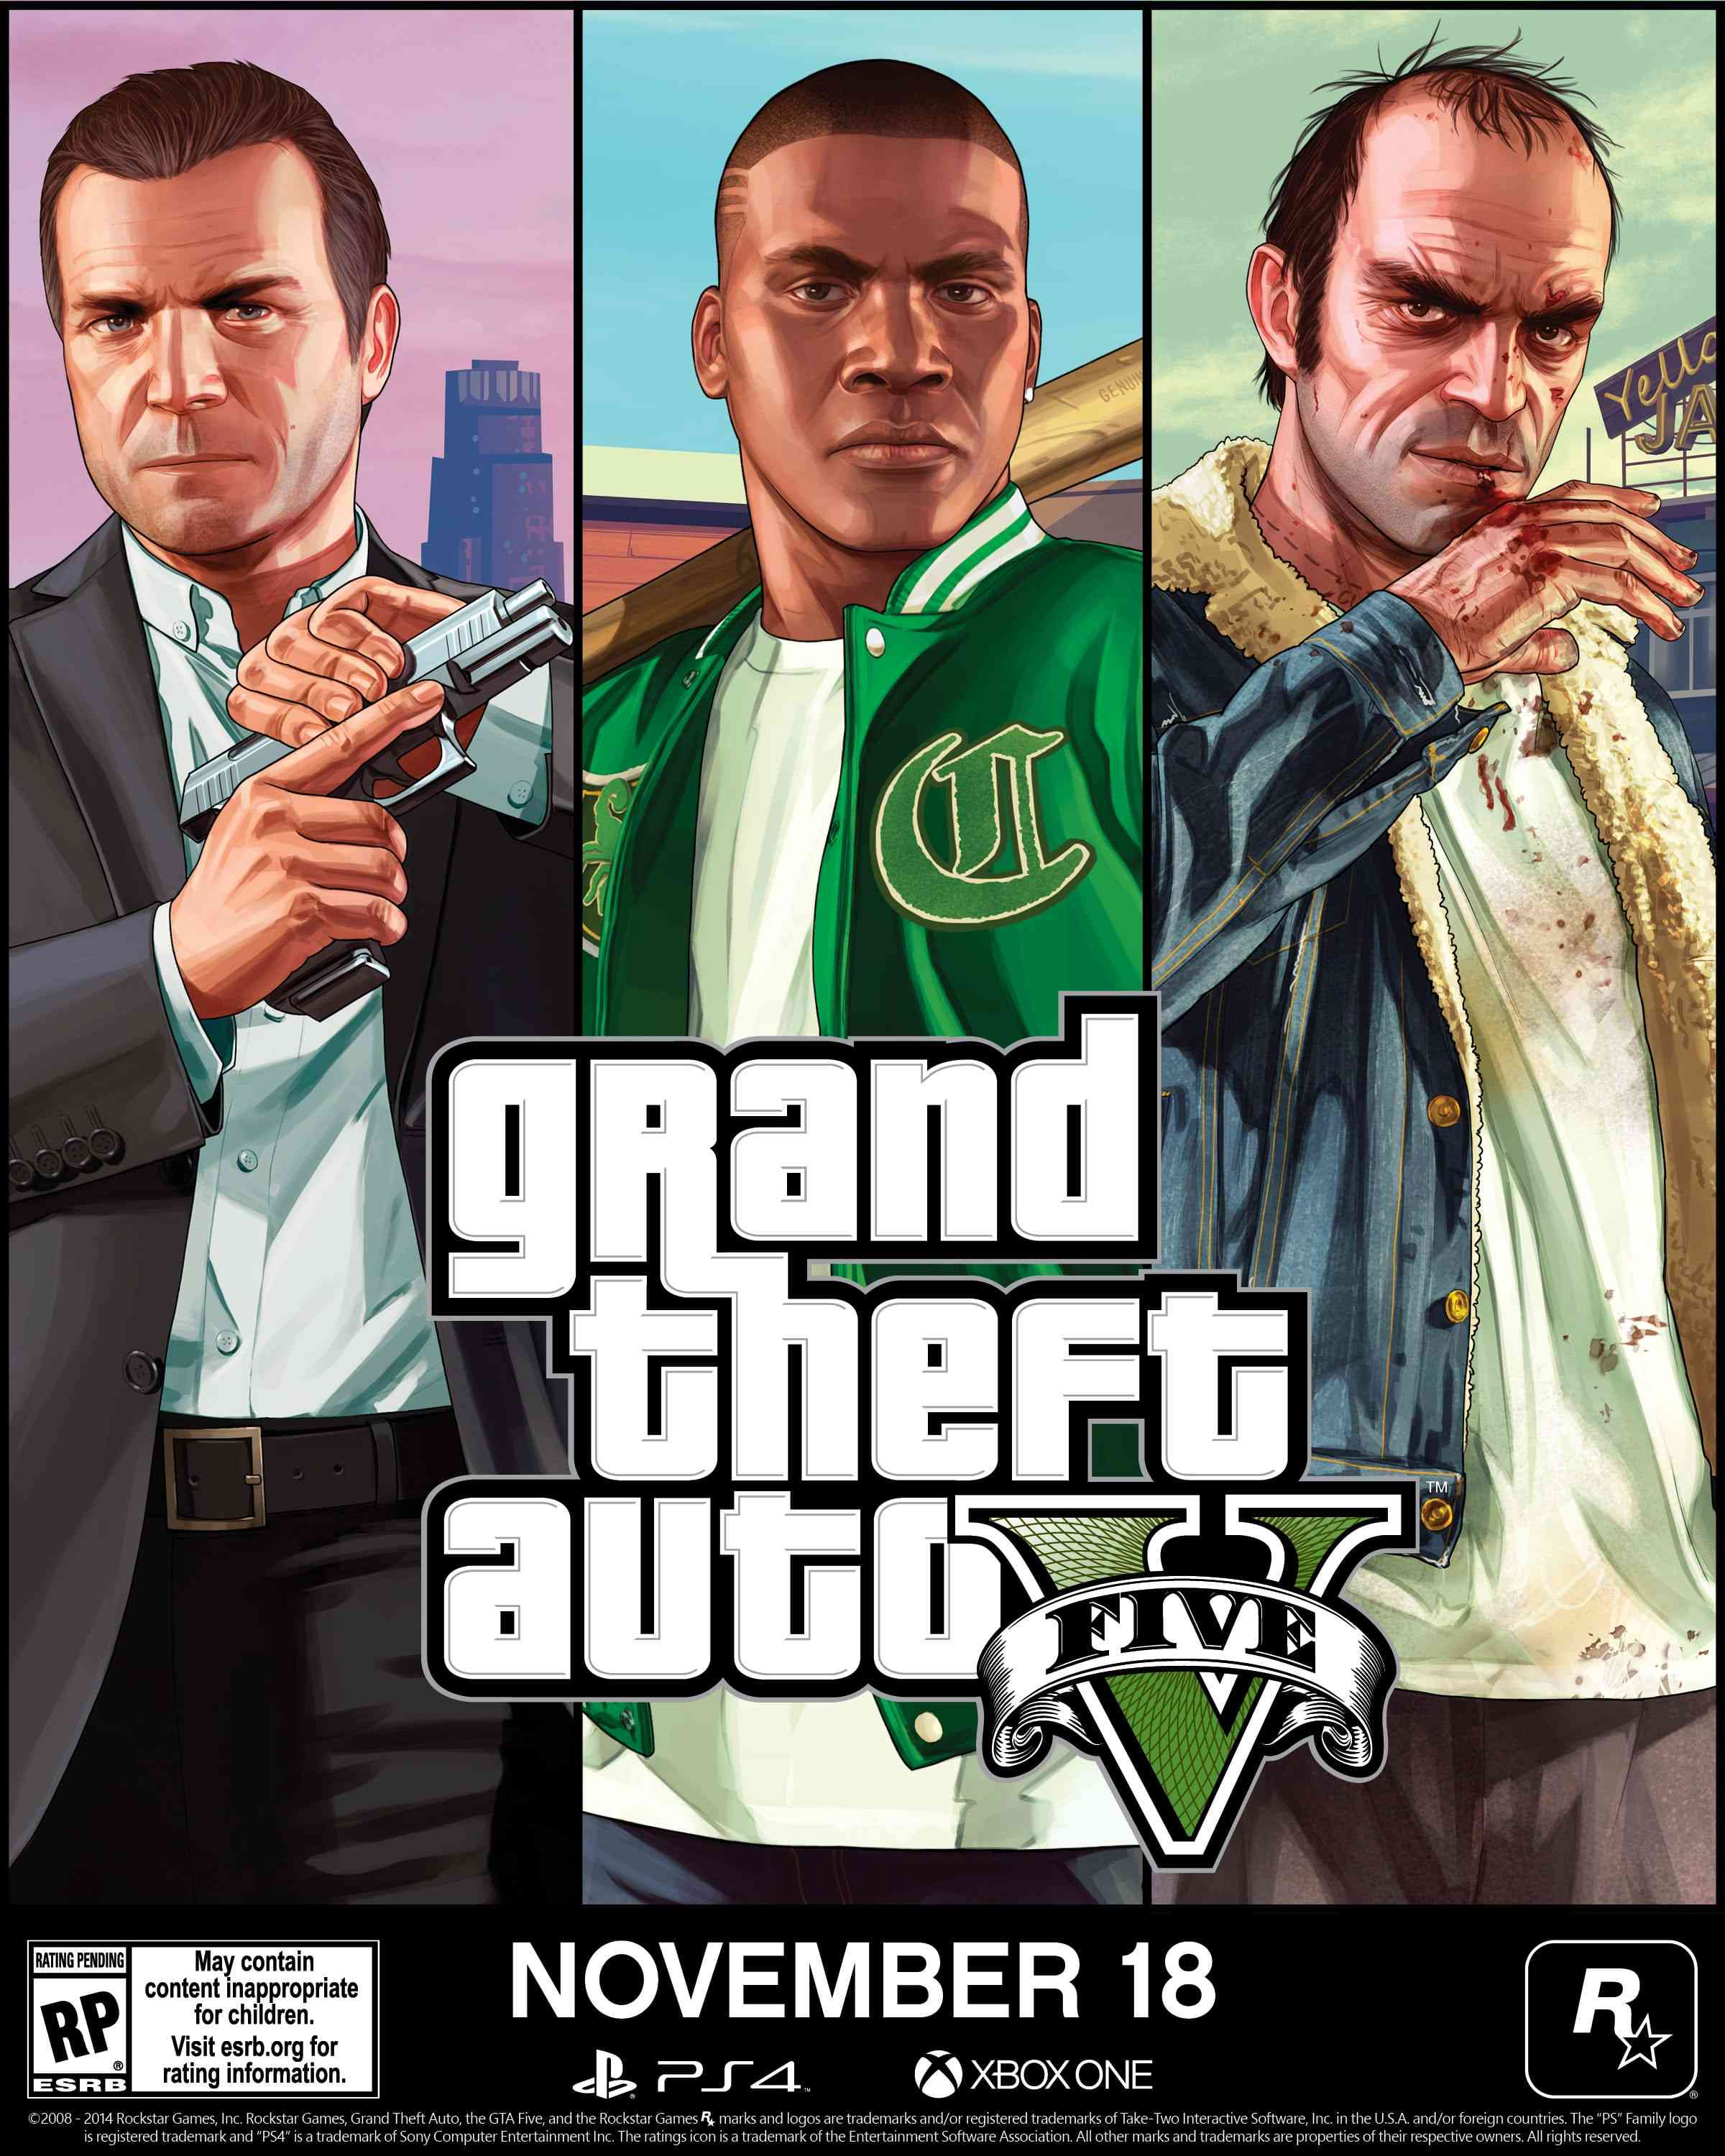 Grand theft auto 5 pc release date in Perth